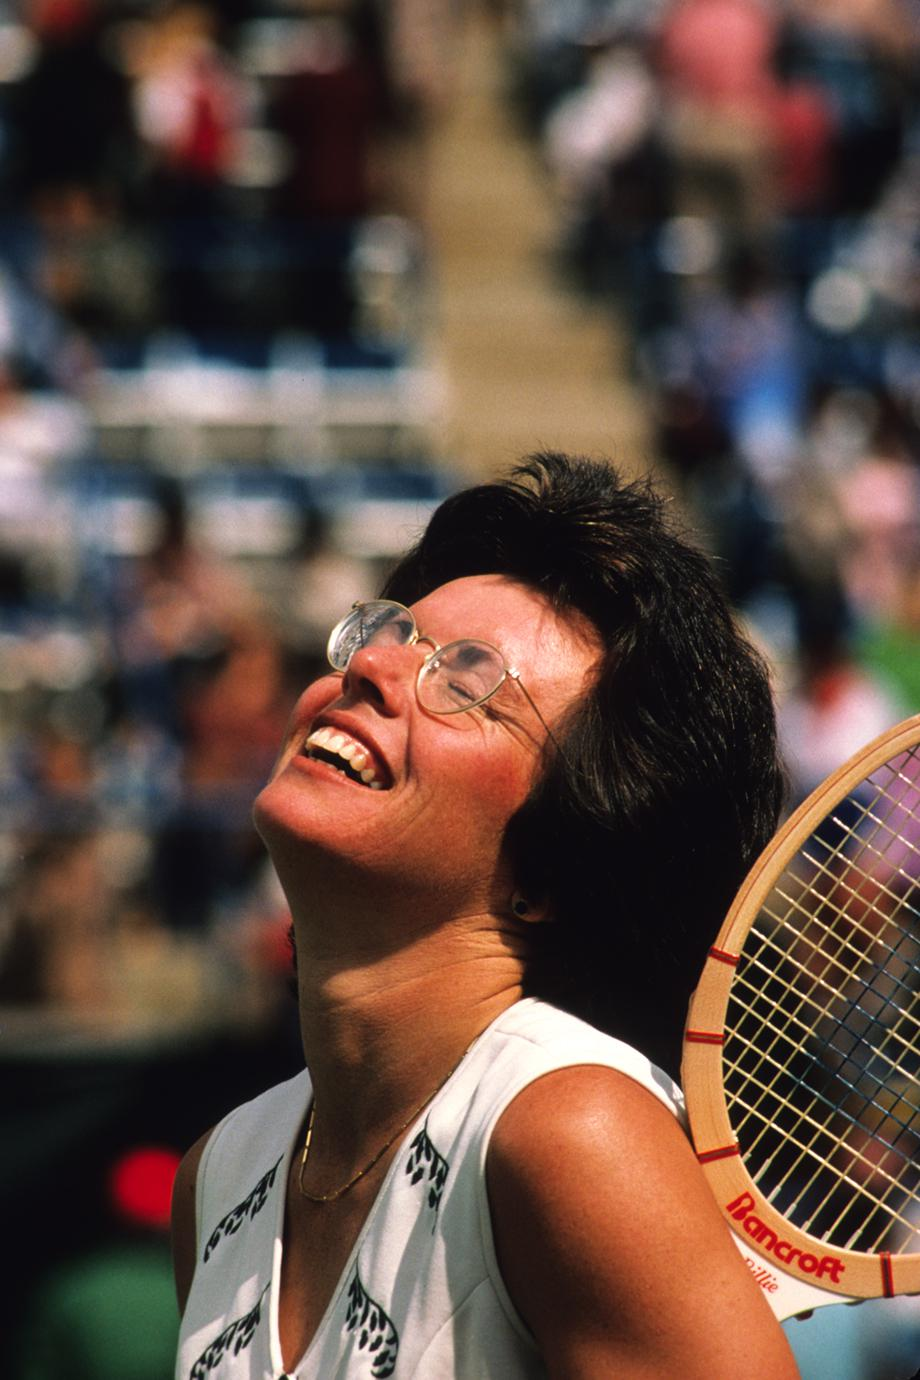 U S Open Tennis Photographers Capture Eight Great Tennis Moments That Don T Involve A Ball Photos